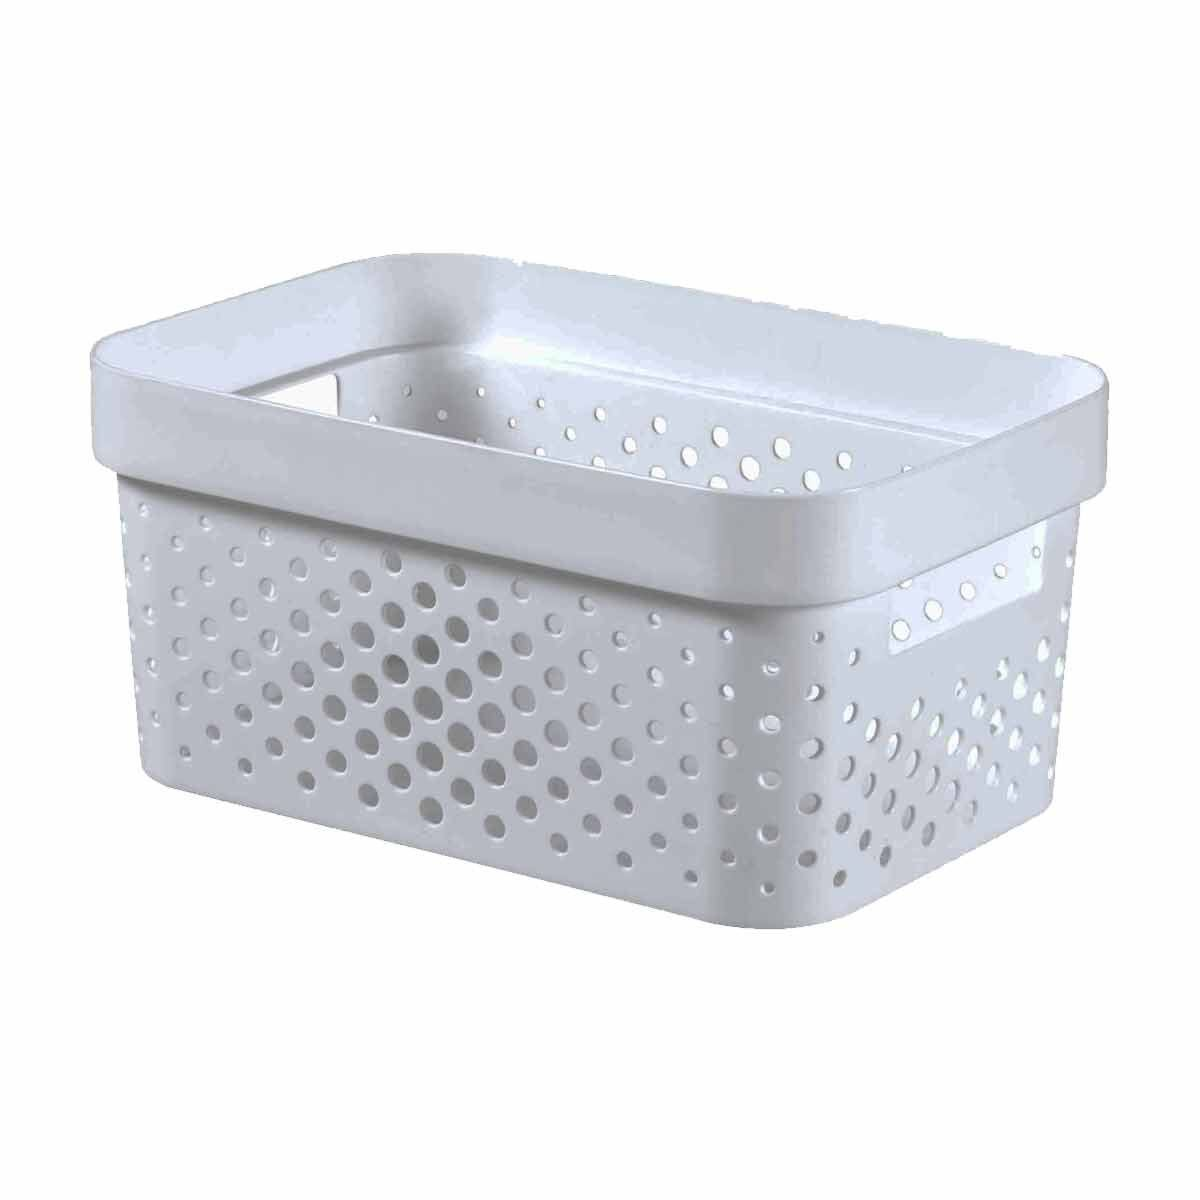 Curver Infinity Recycled Storage Basket 4.5 Litres Pack of 5 White